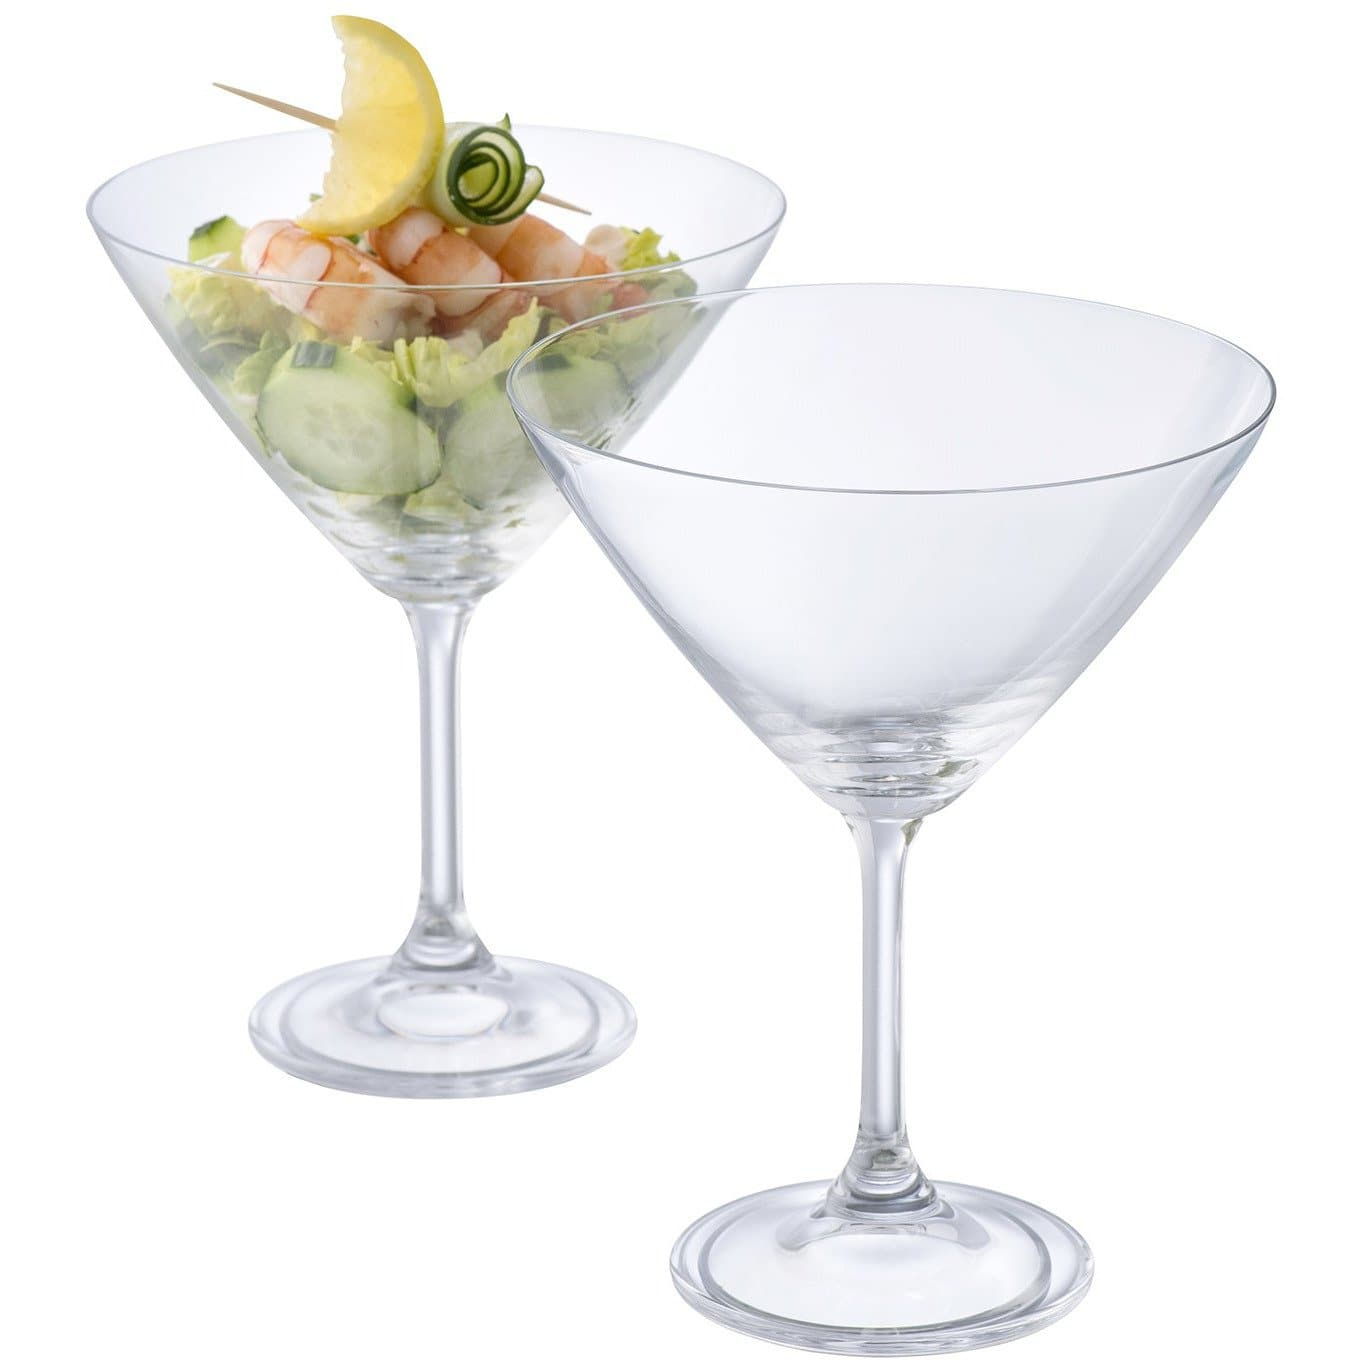 NEW Elegance Martini/Cocktail Pair - Galway Irish Crystal